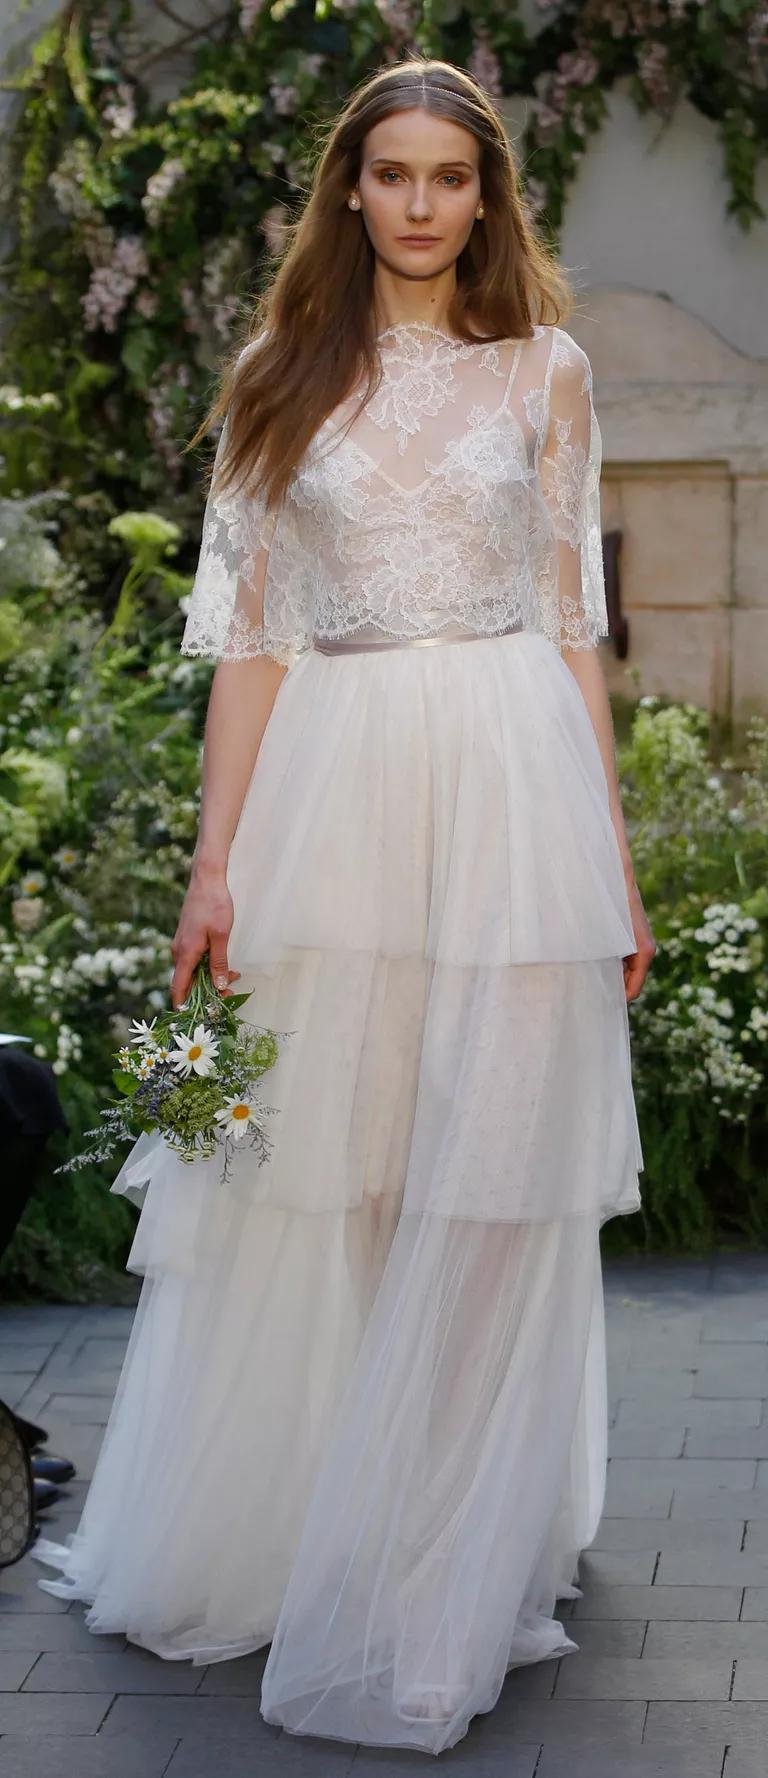 chantilly lace wedding dress designer monique lhuillier chantilly lace wedding dress Monique Lhuillier Spring Wedding Dress With Chantilly Lace Camisole And Blush Tulle Tiered